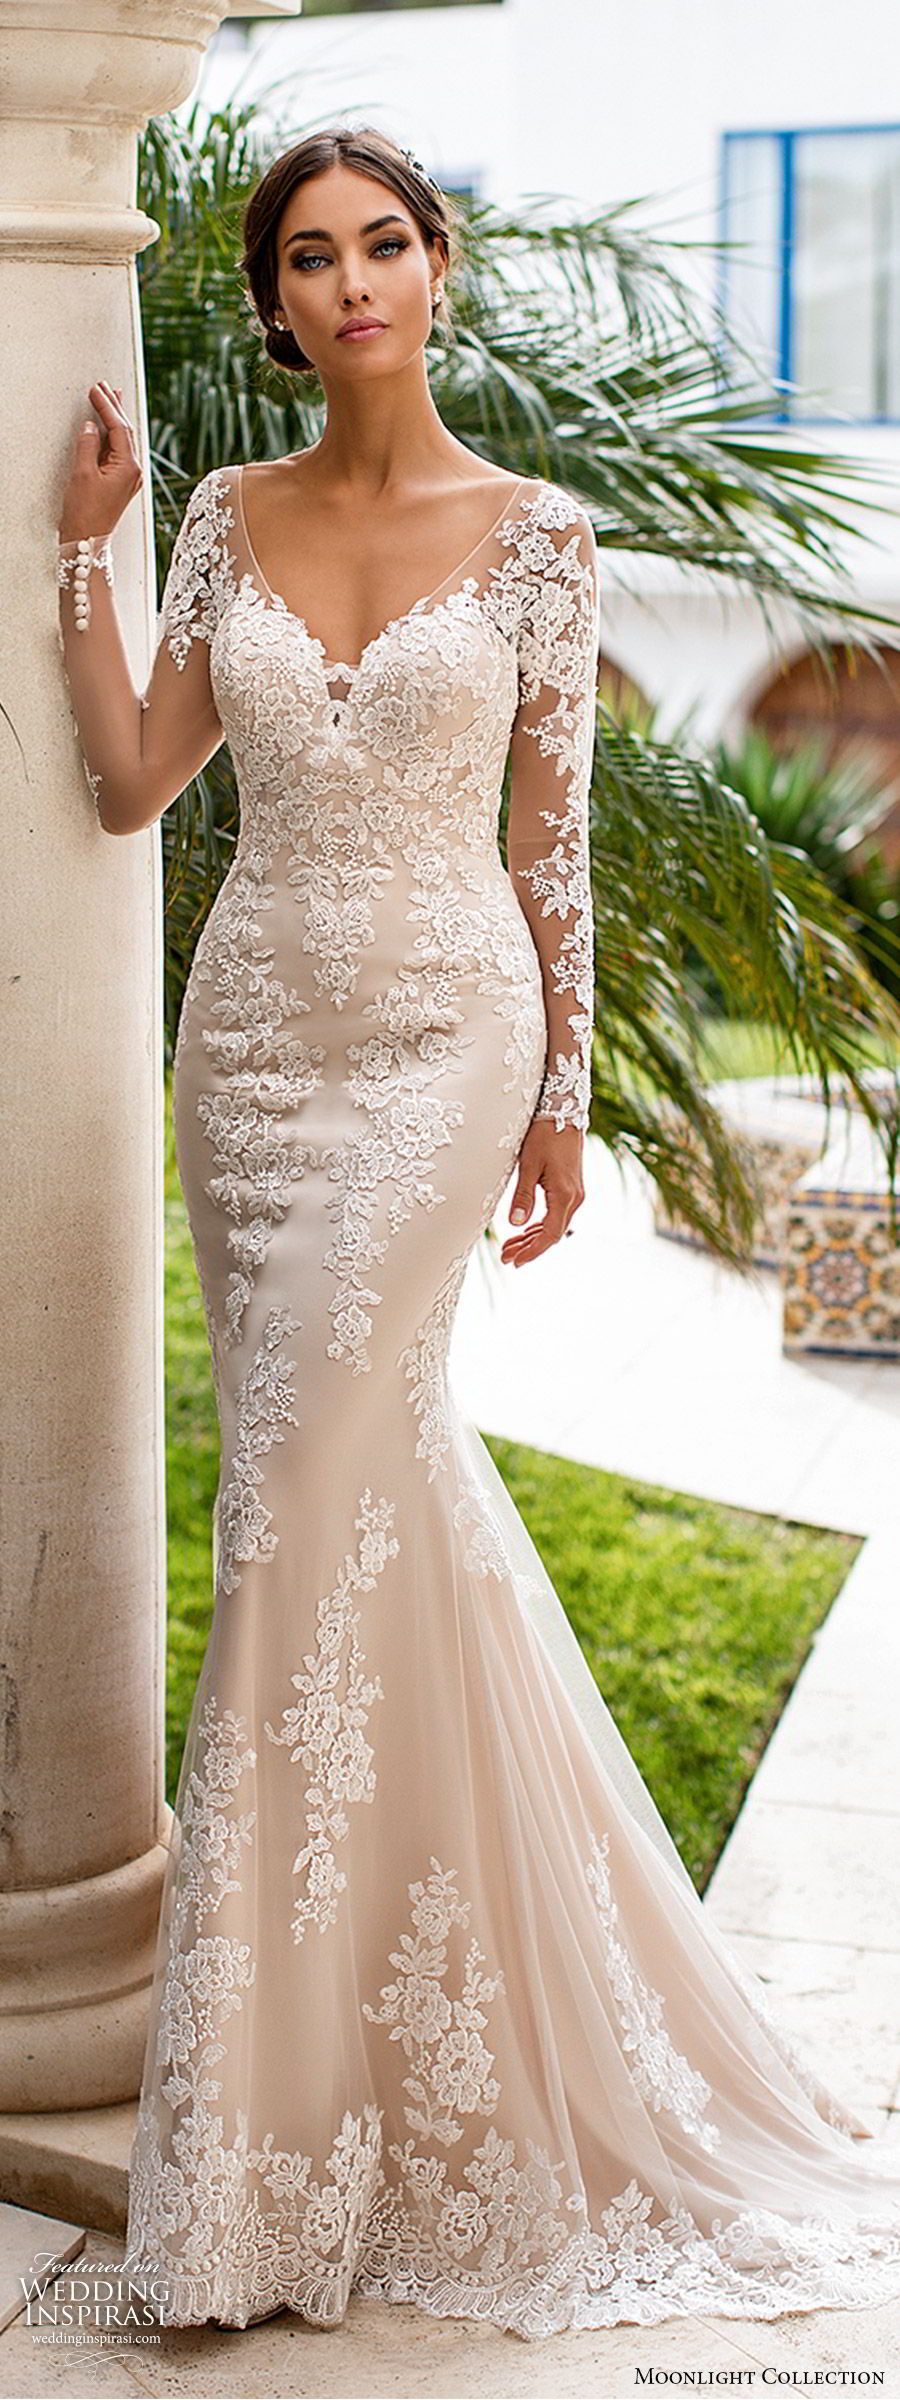 moonlight collection fall 2019 bridal illusion long sleeves sheer v neck sweetheart fully embellished lace sheath wedding dress (2) low illusion back chapel train elegant romantic mv